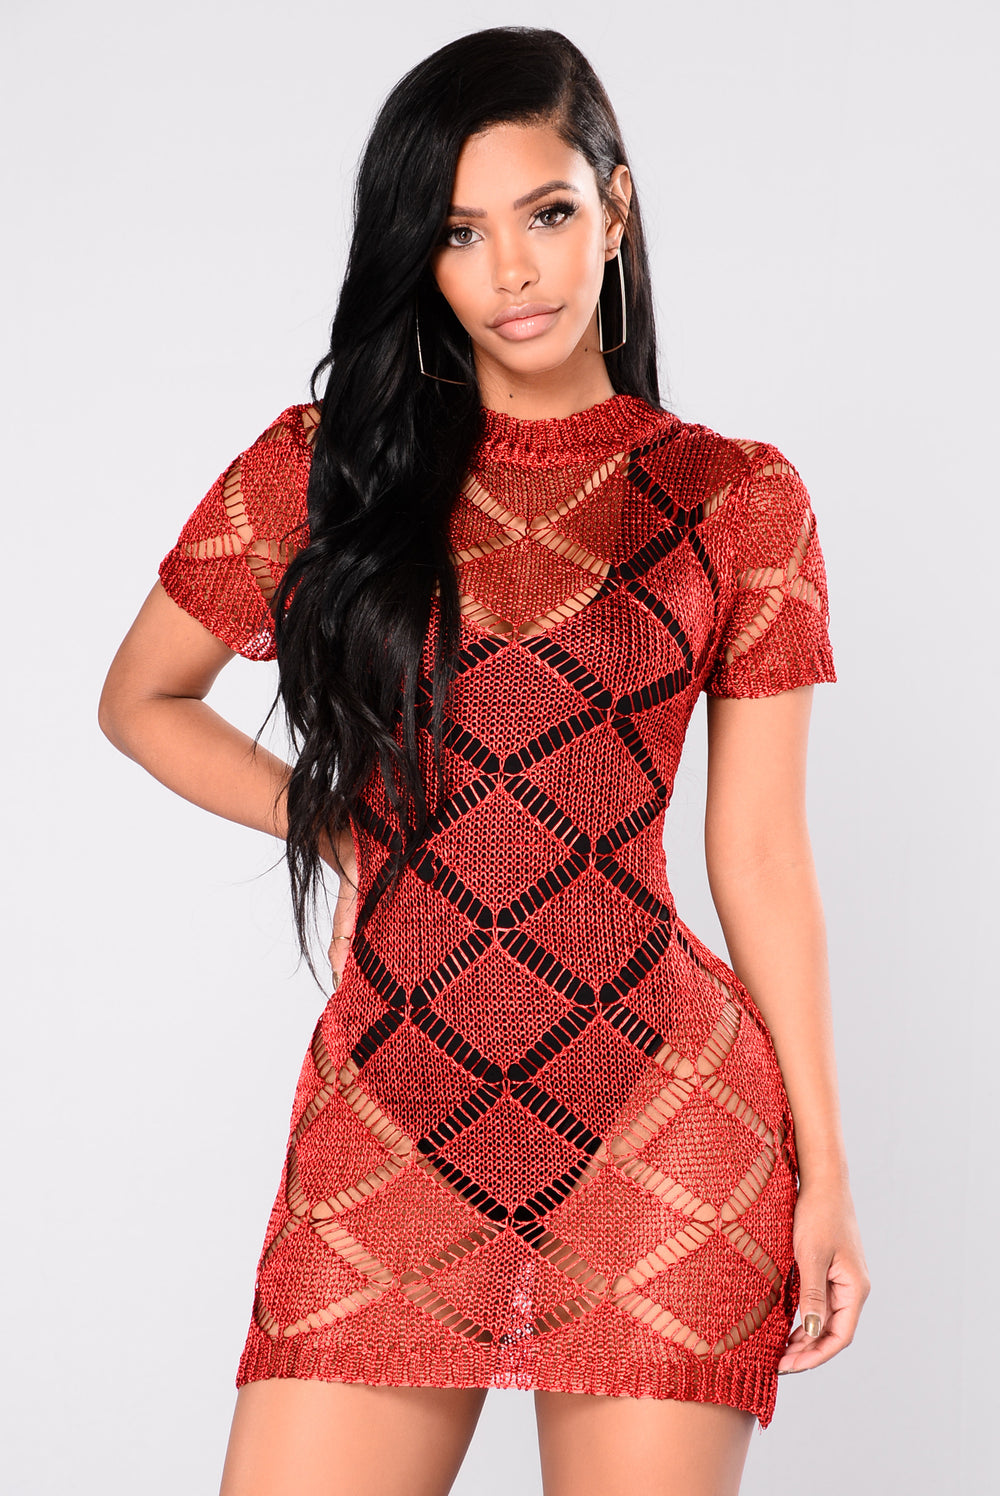 Lips Of Steal Dress - Red